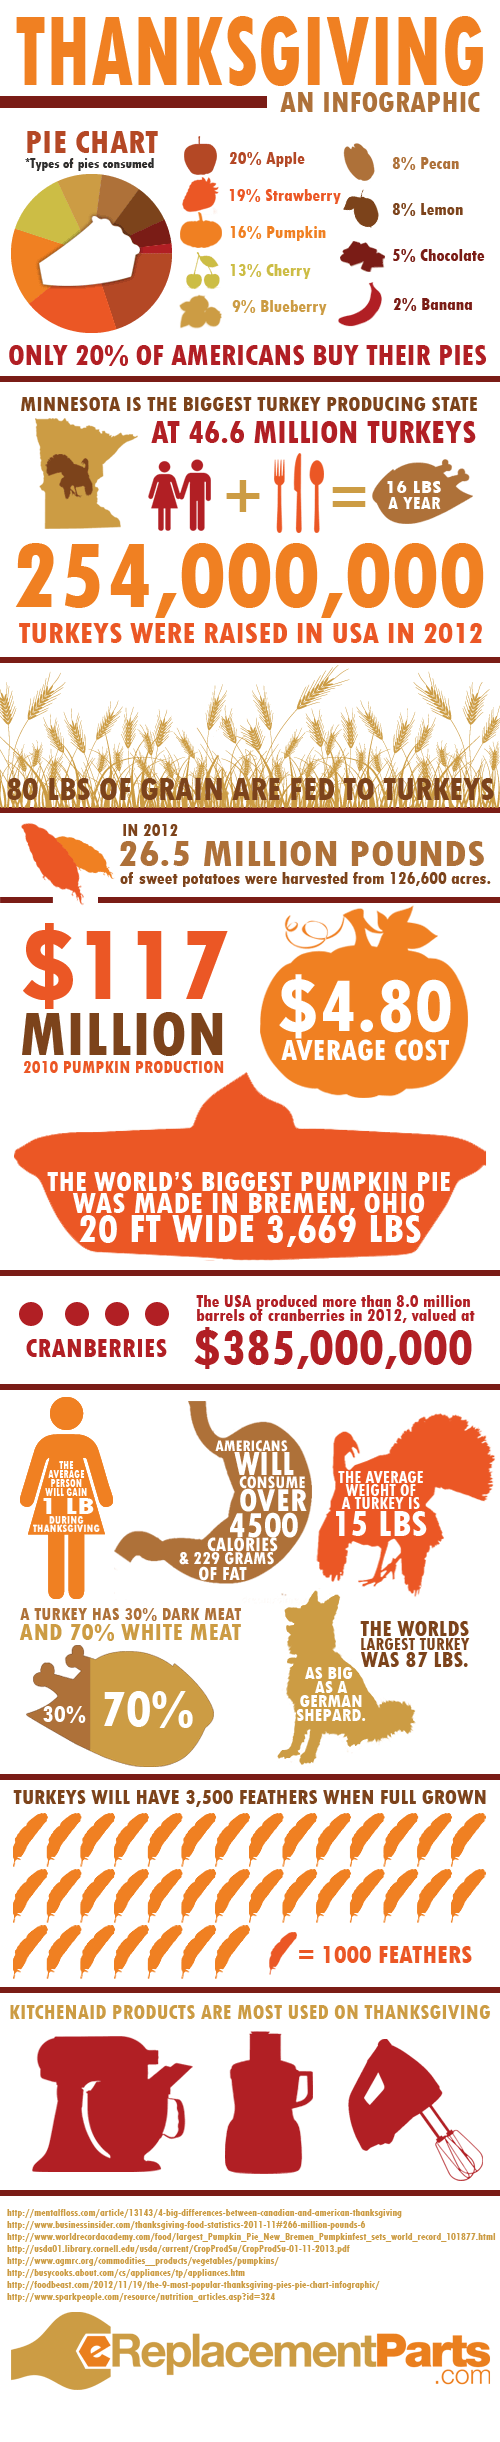 Americans, Feast on These Thanksgiving Facts!